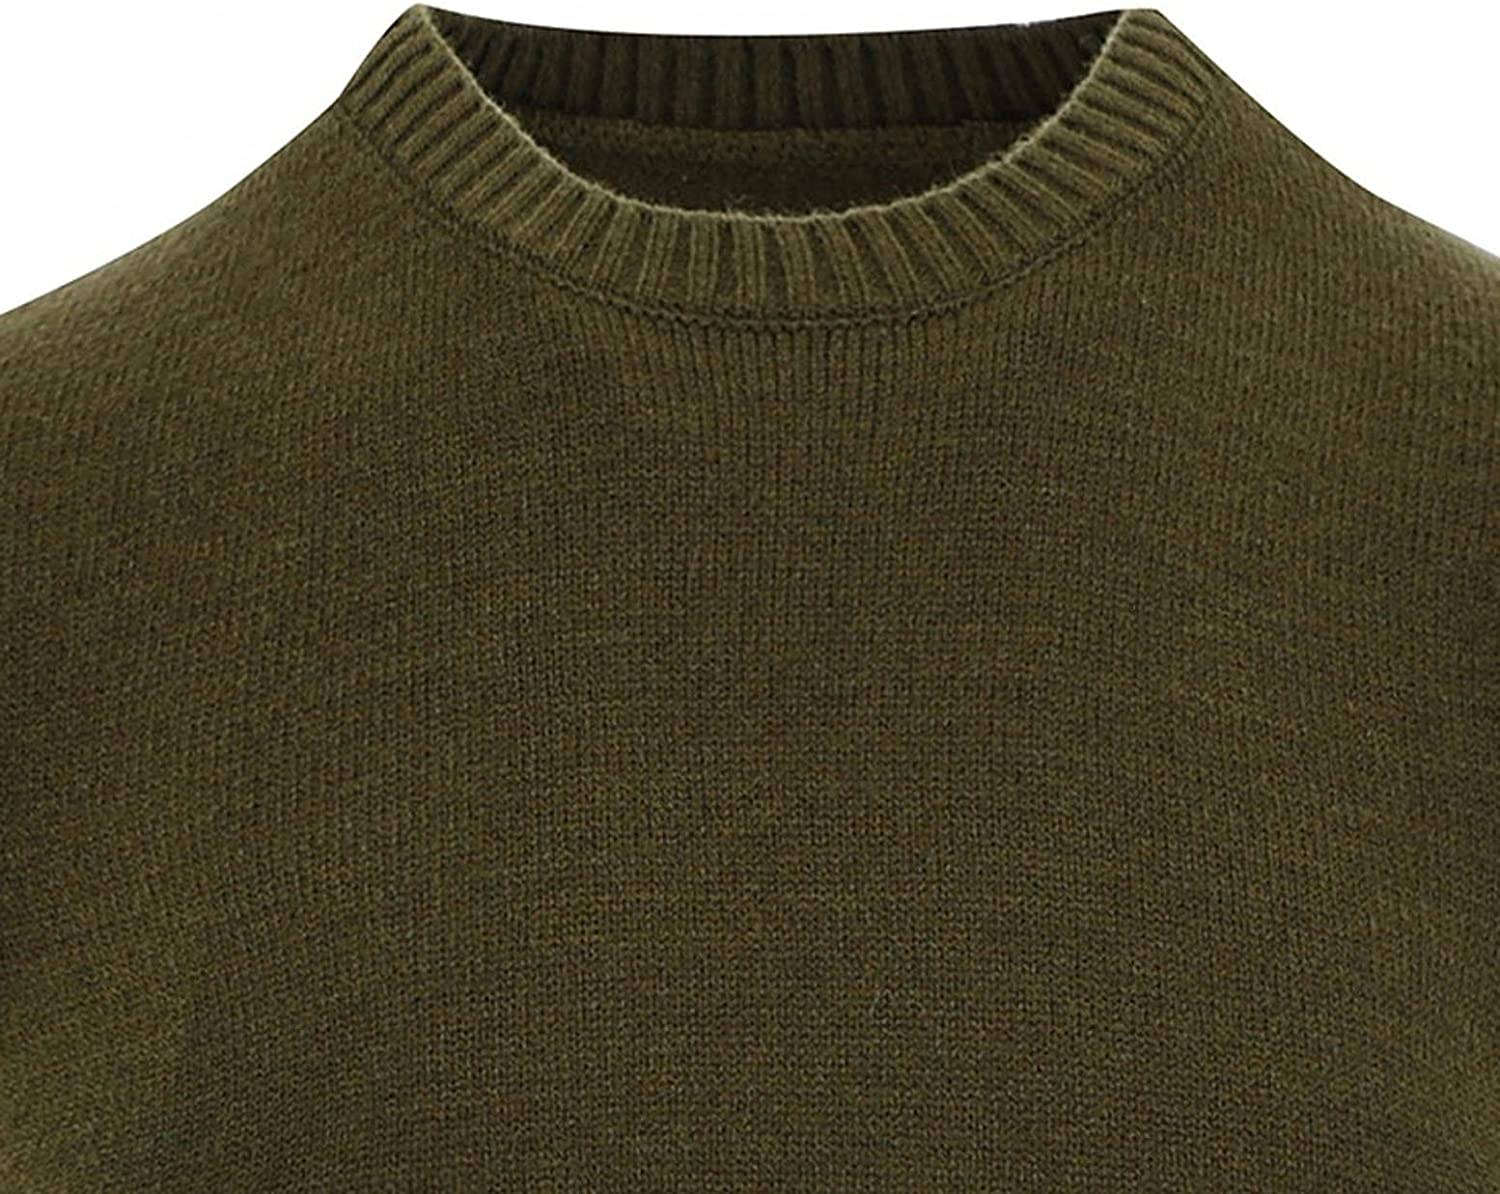 Men's Knitted Sweaters Vests Sleeveless Crewneck Sweatshirts Pullover Casual Slim Fit Argyle Knitwear Tops Comfy Tops